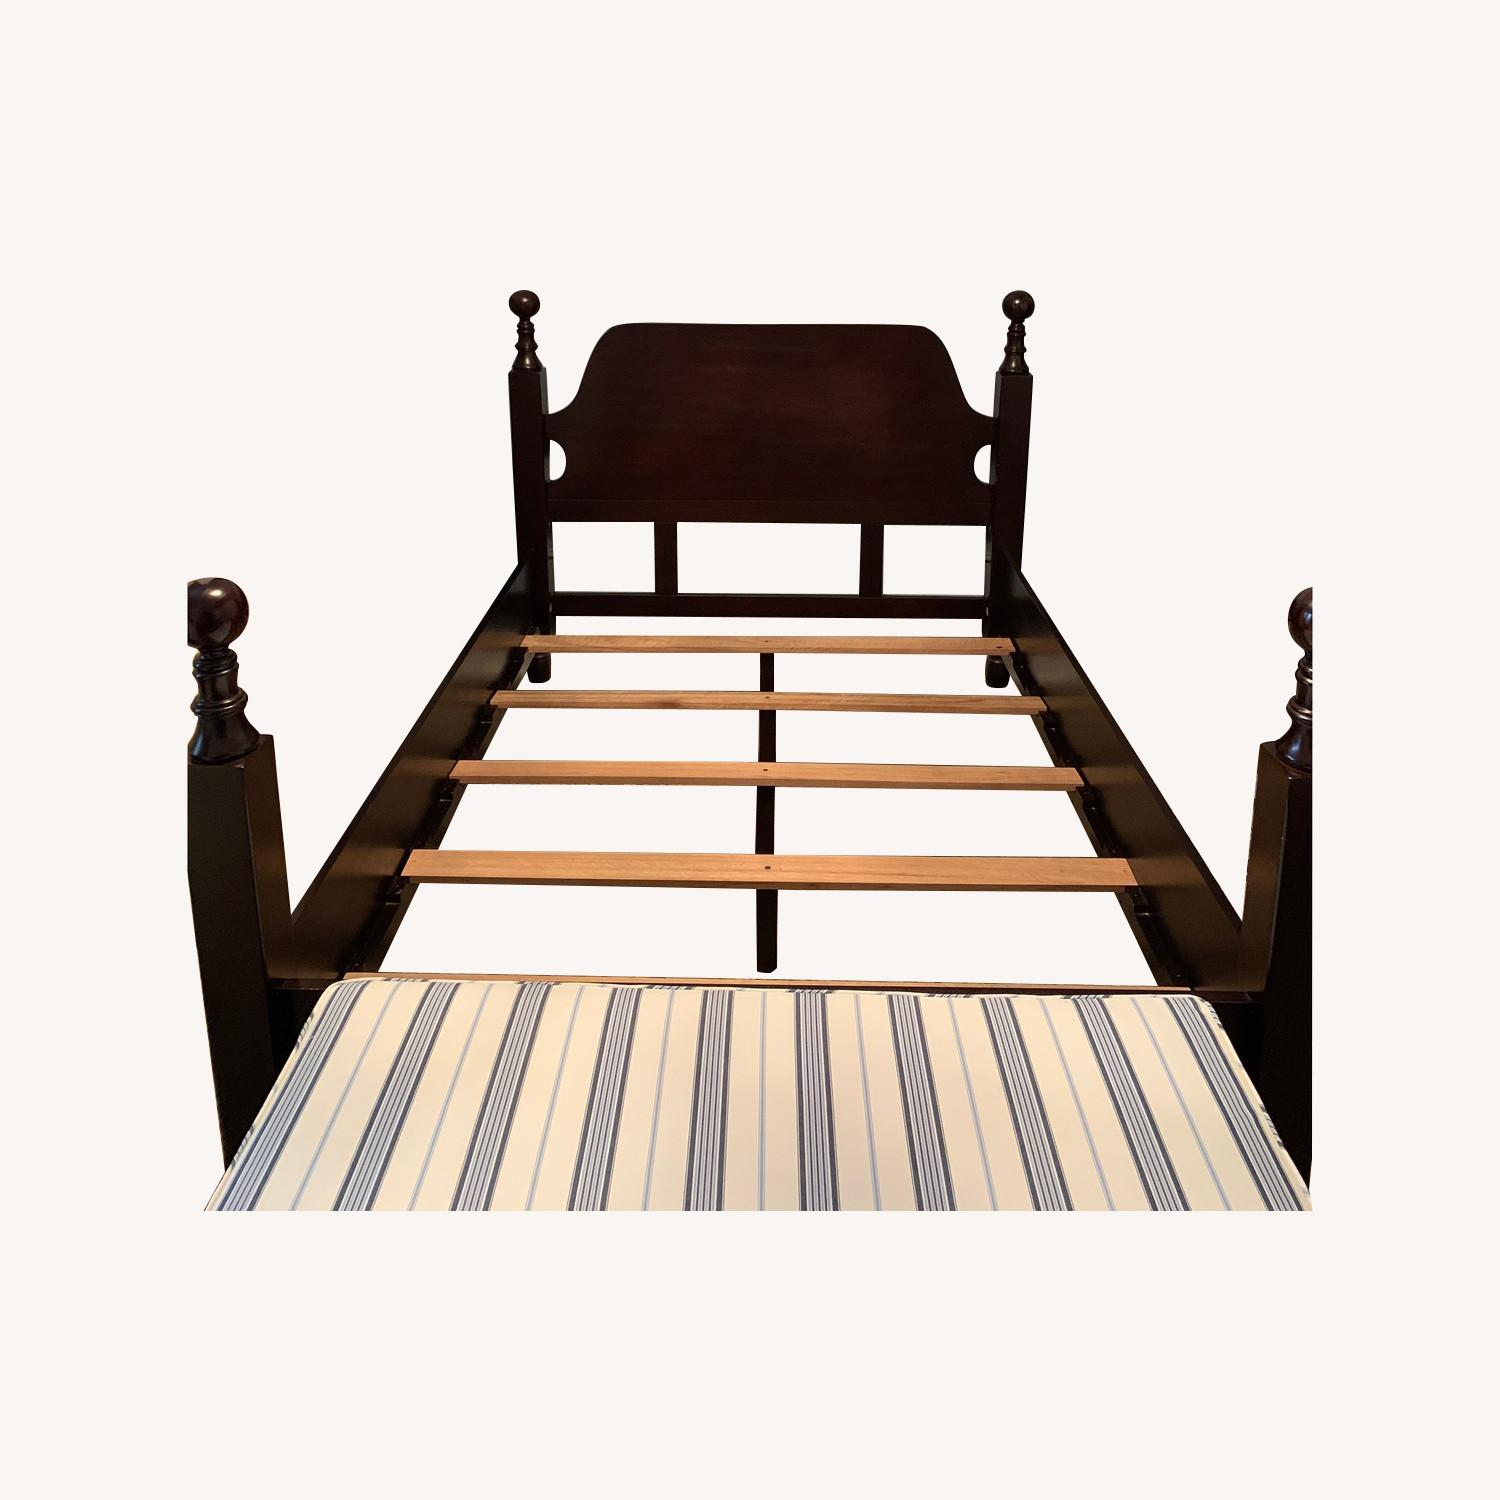 Pottery Barn Queen Hudson Sleigh Bed - image-4